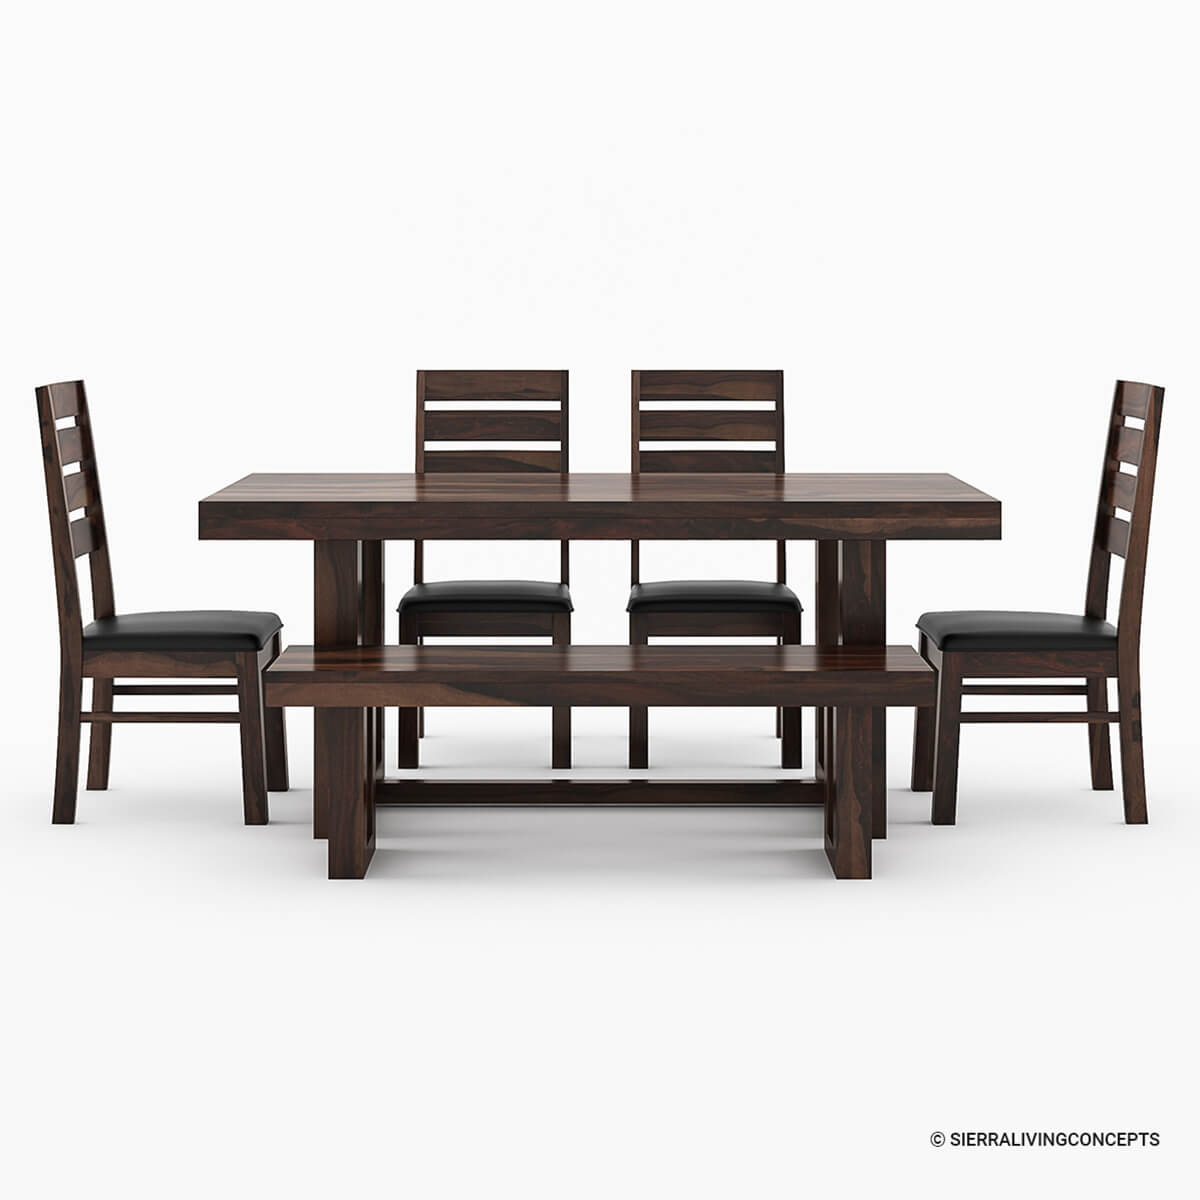 Galveston Rustic Solid Wood 6 Piece Dining Table Chair Set With Bench